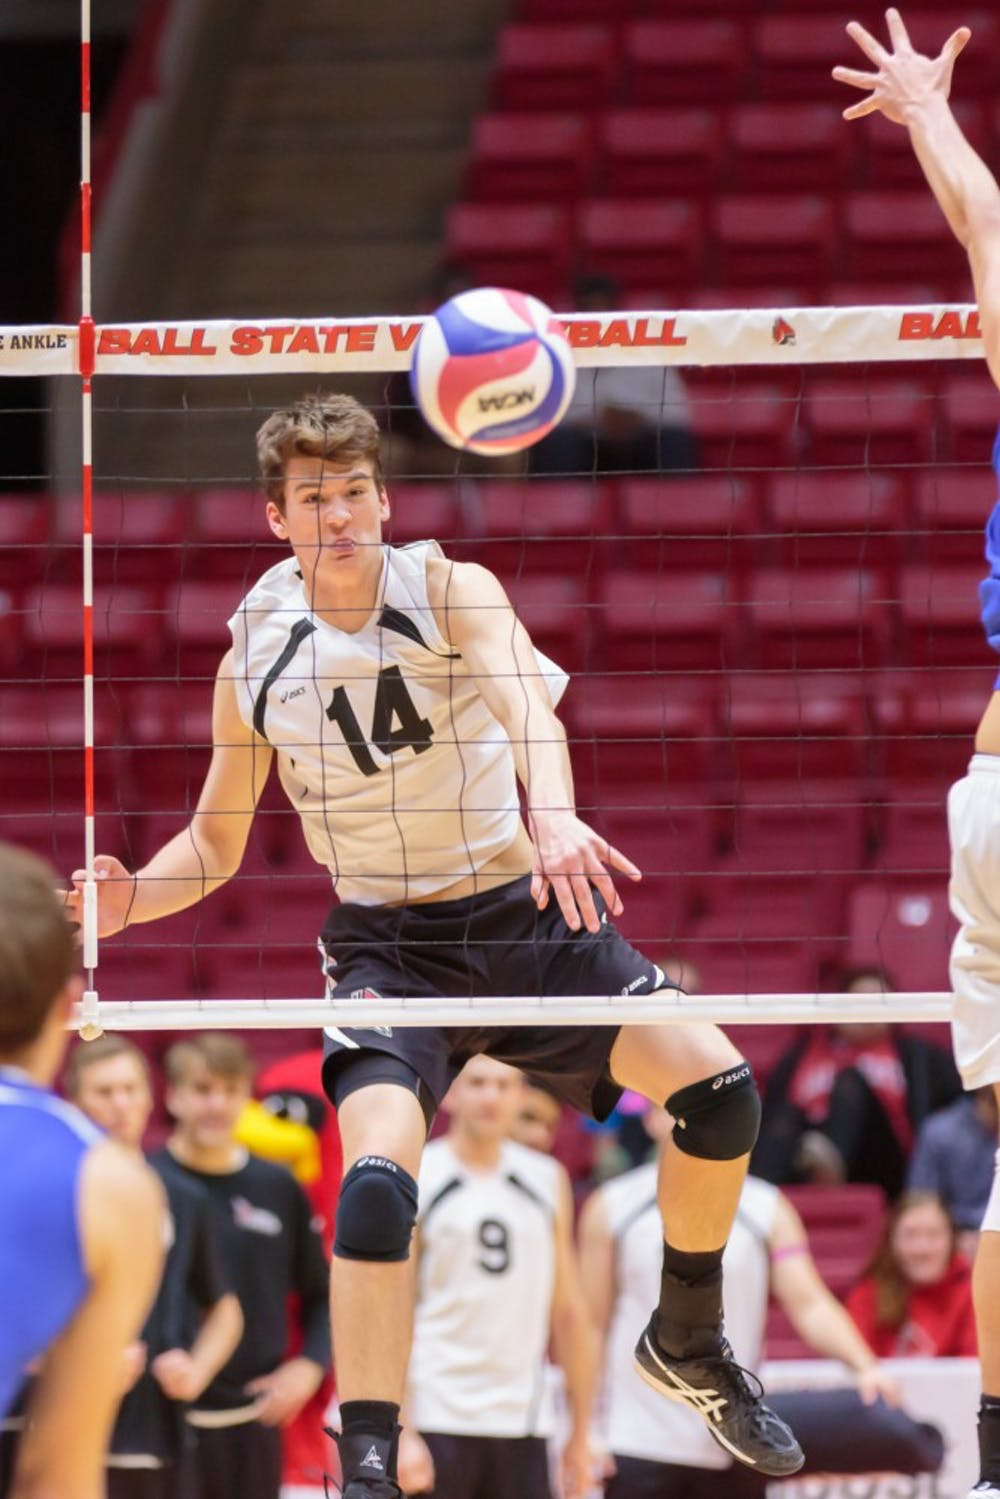 Freshman outside attacker Matt Szews hits the ball over the net during the game against Fort Wayne on Feb. 7 in Worthen Arena. The Cardinals won 3-0 against the Mastodons. Kyle Crawford // DN